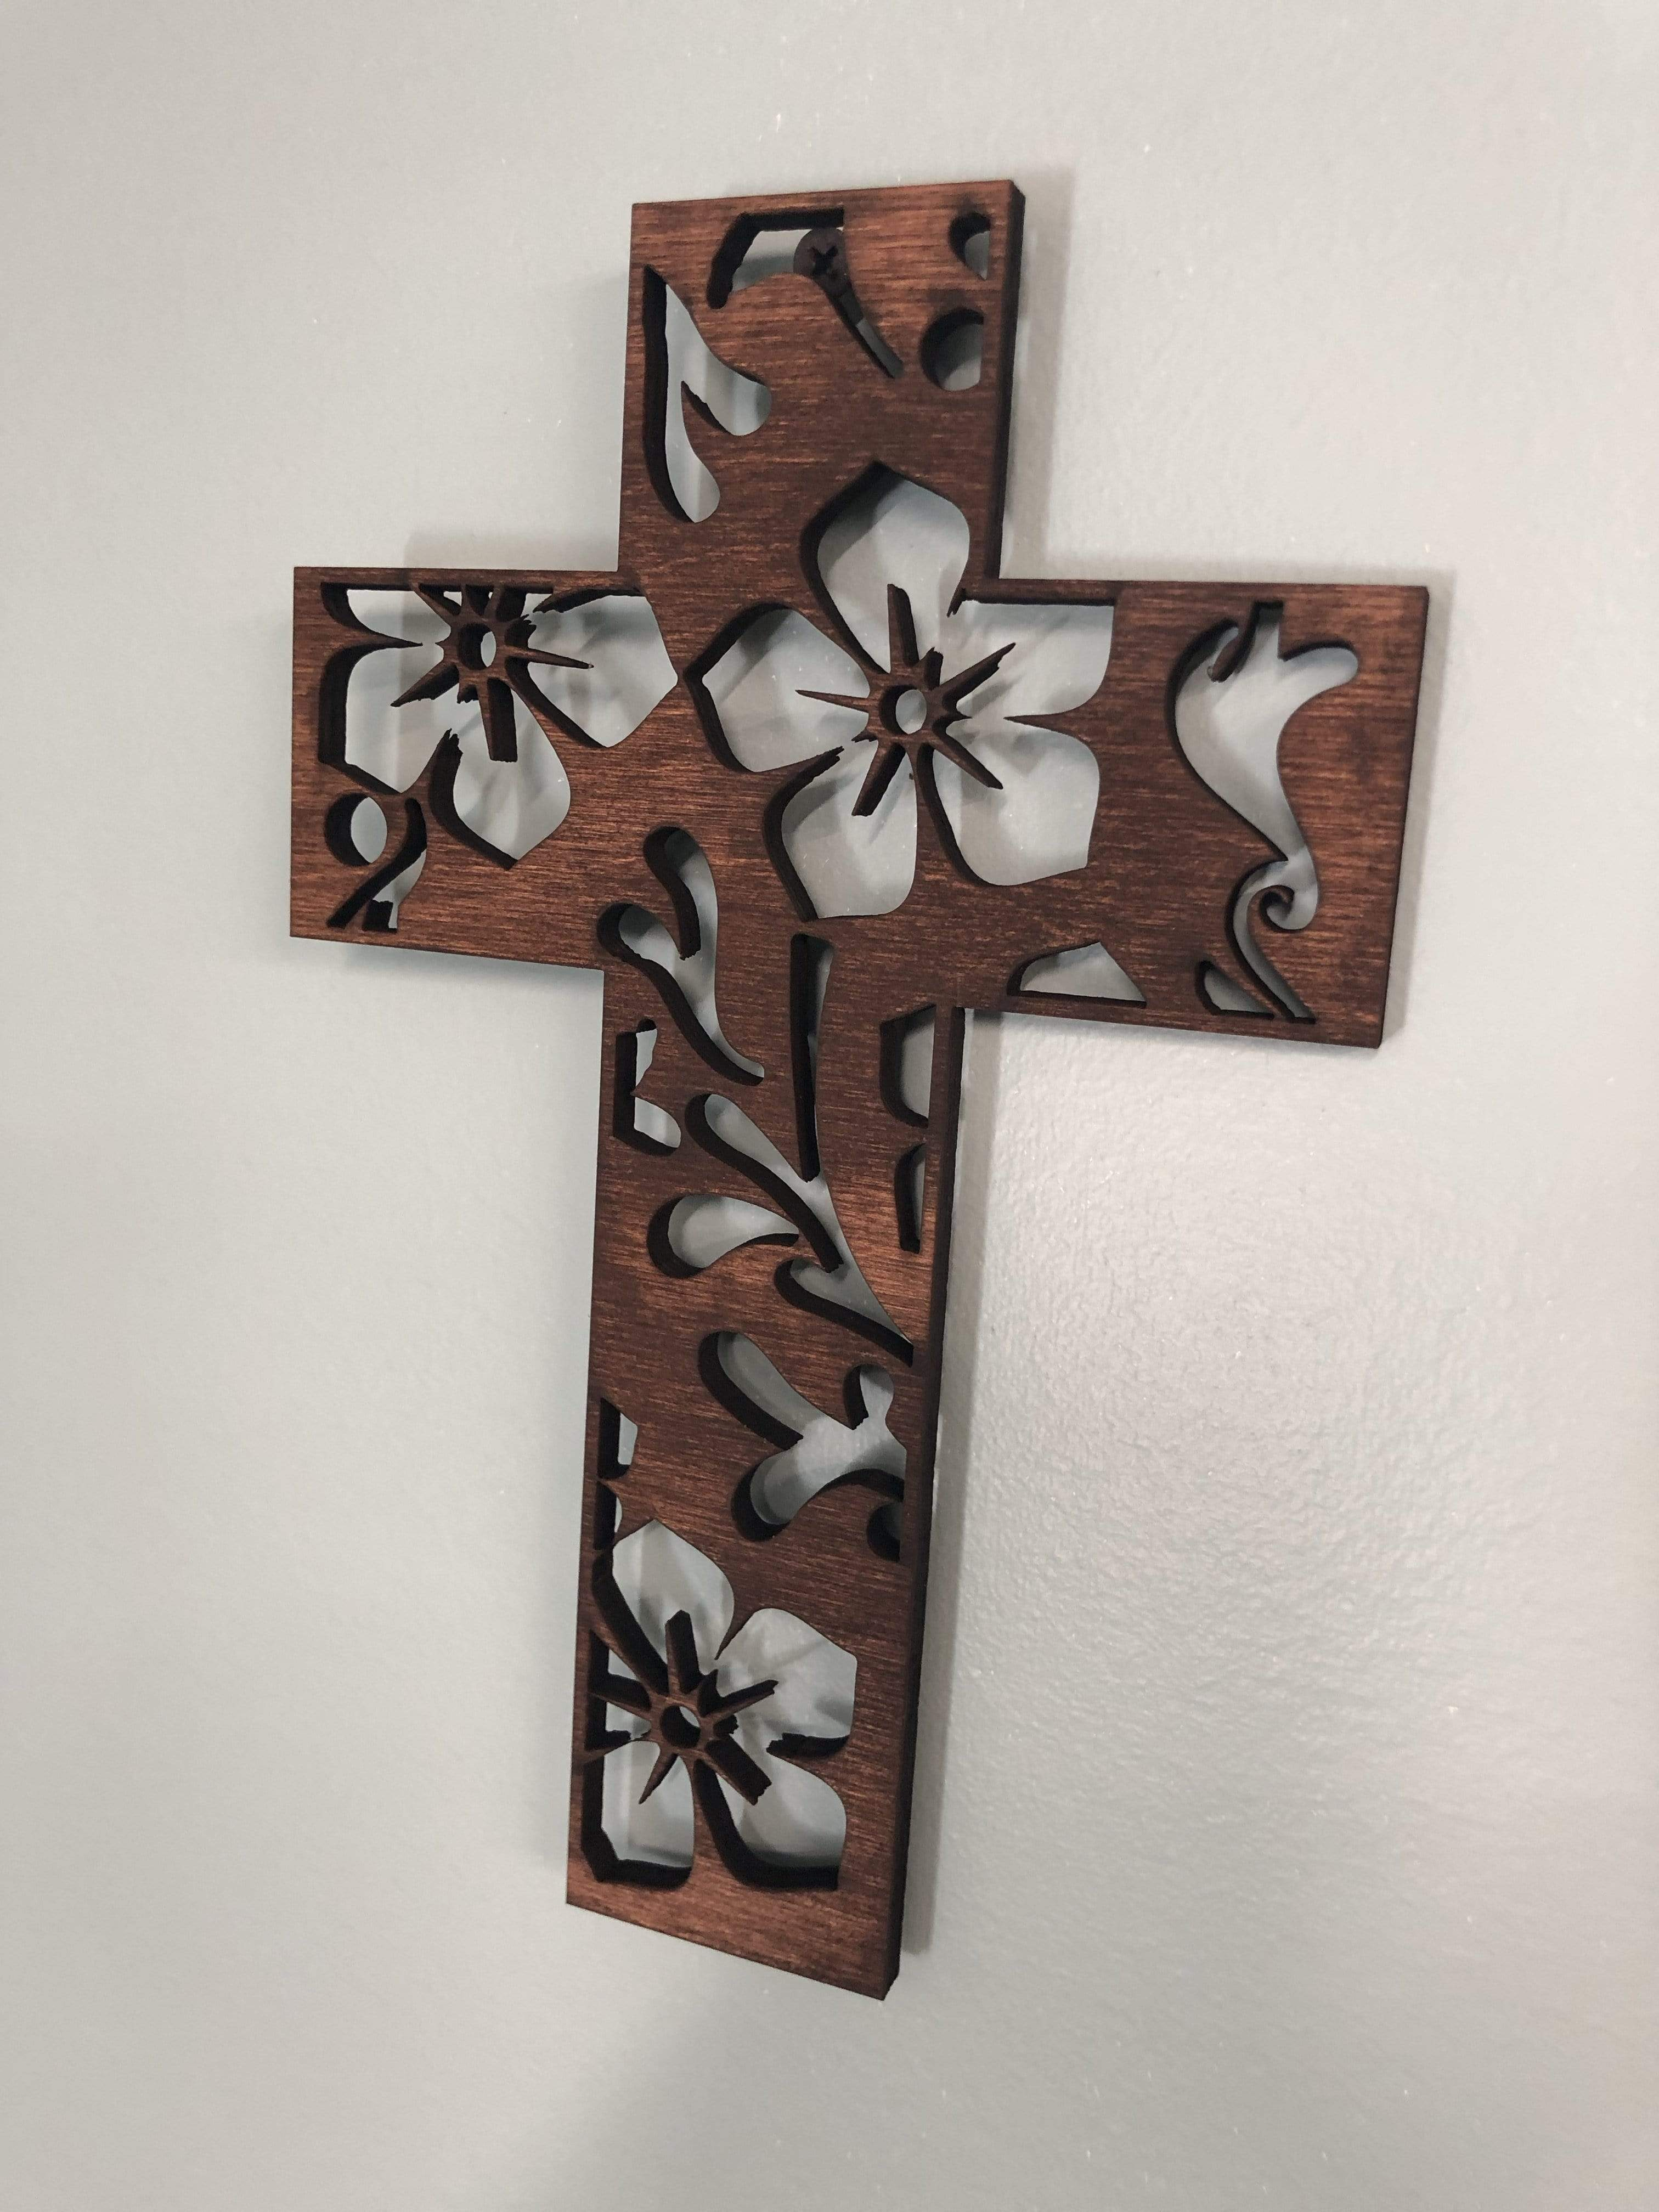 Friday 6/14 FREE CROSS GIVEAWAY